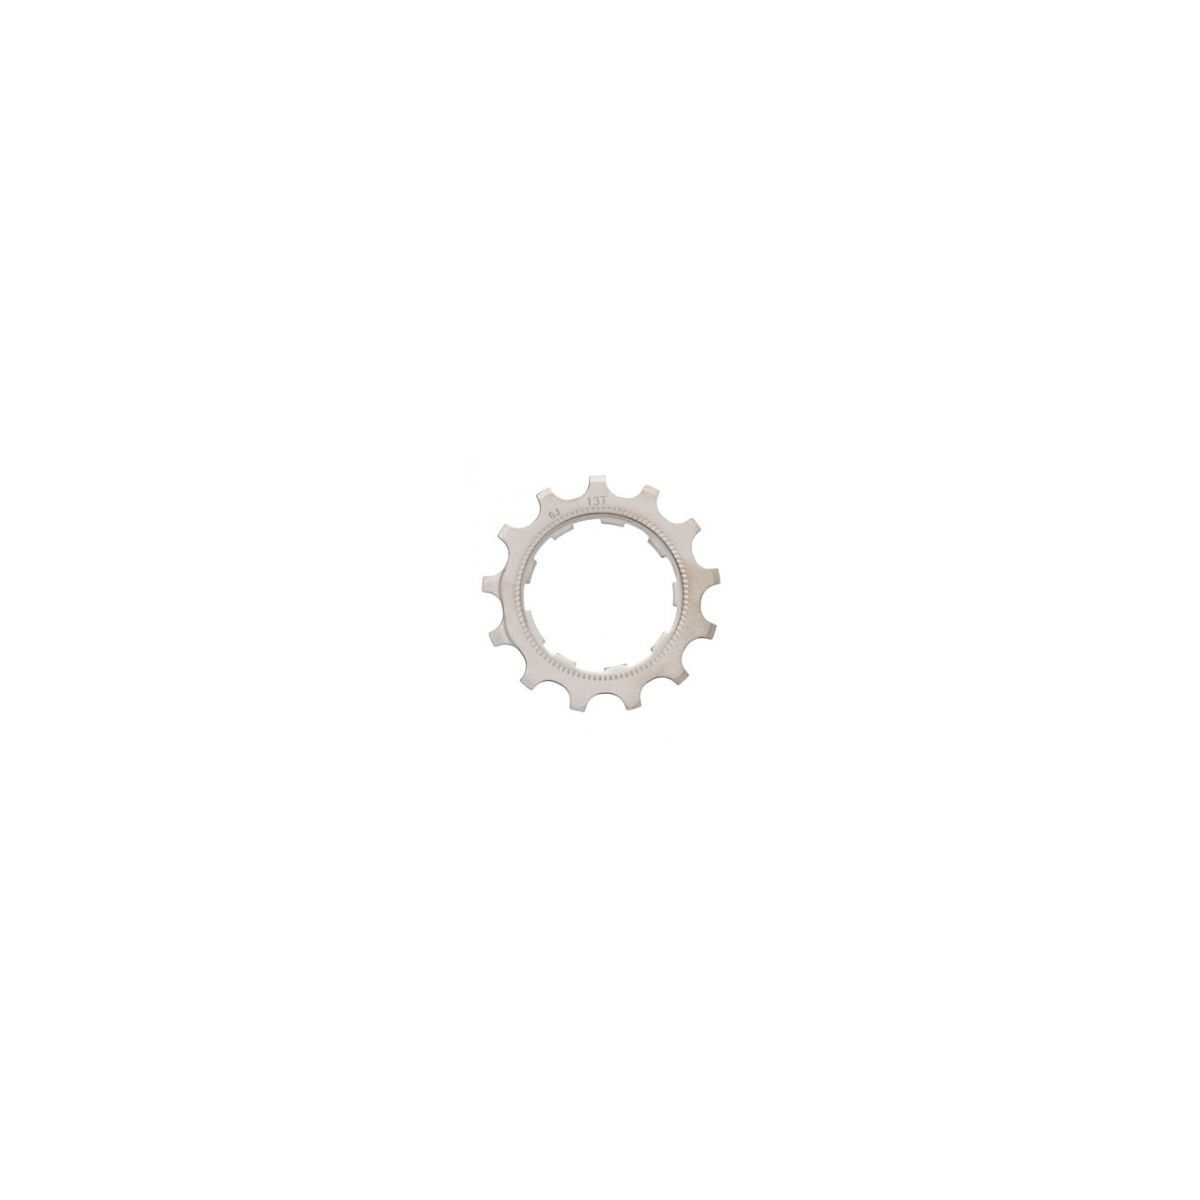 Ultegra CS-6600 10-speed, 13-tooth replacement sprocket